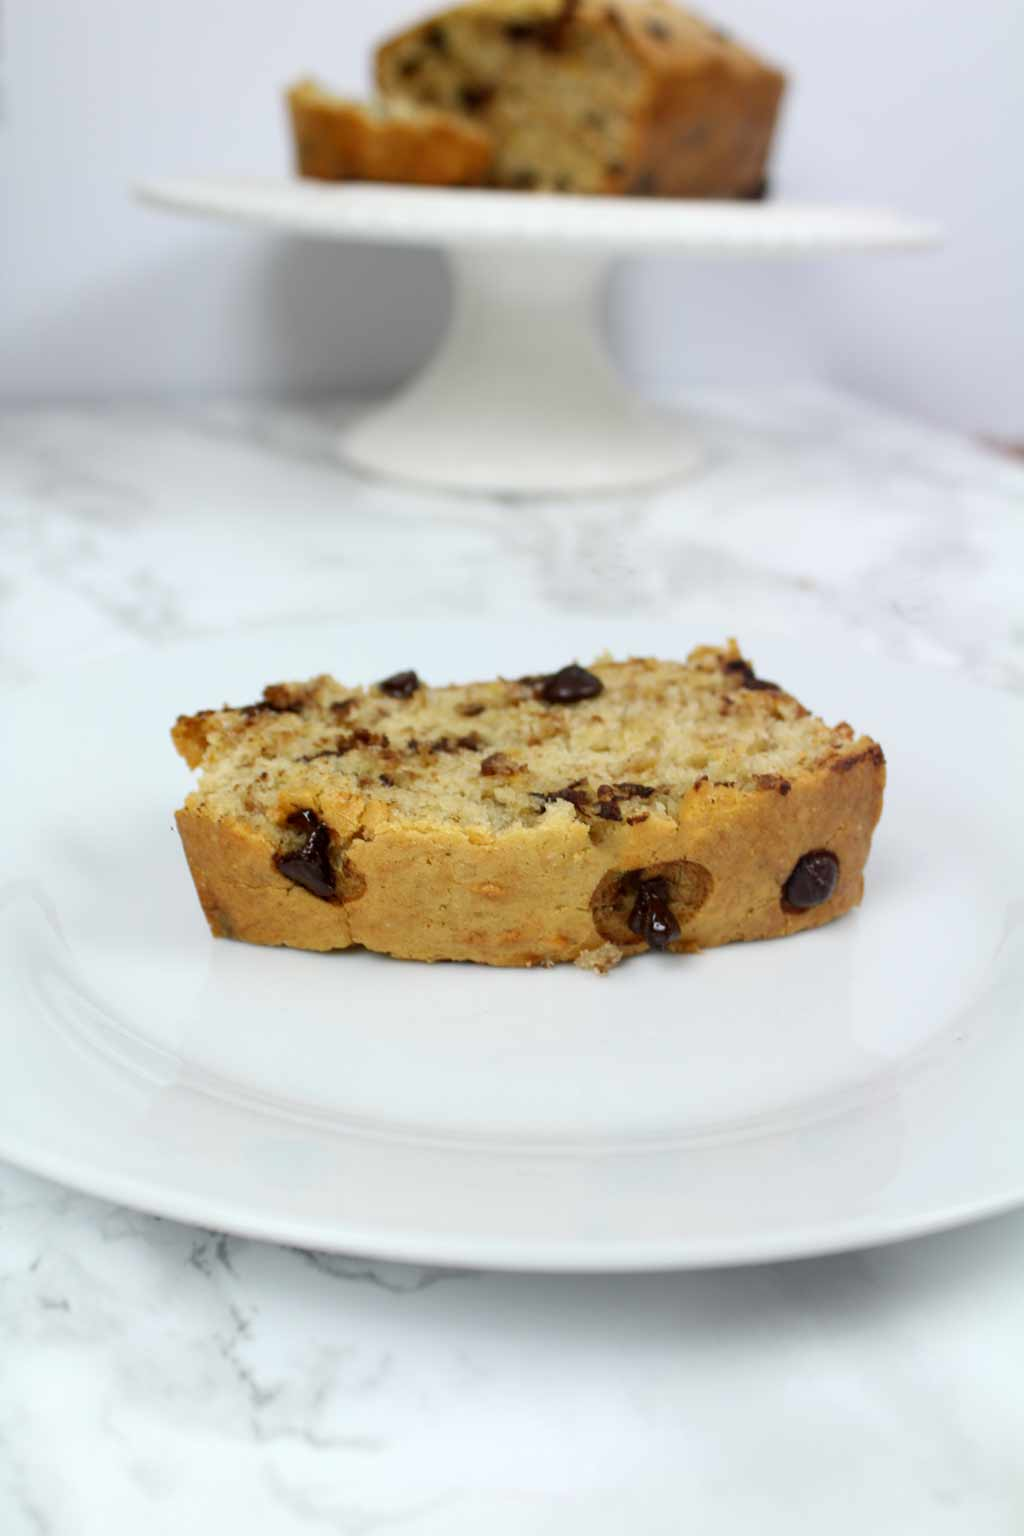 slice of choc chip banana bread